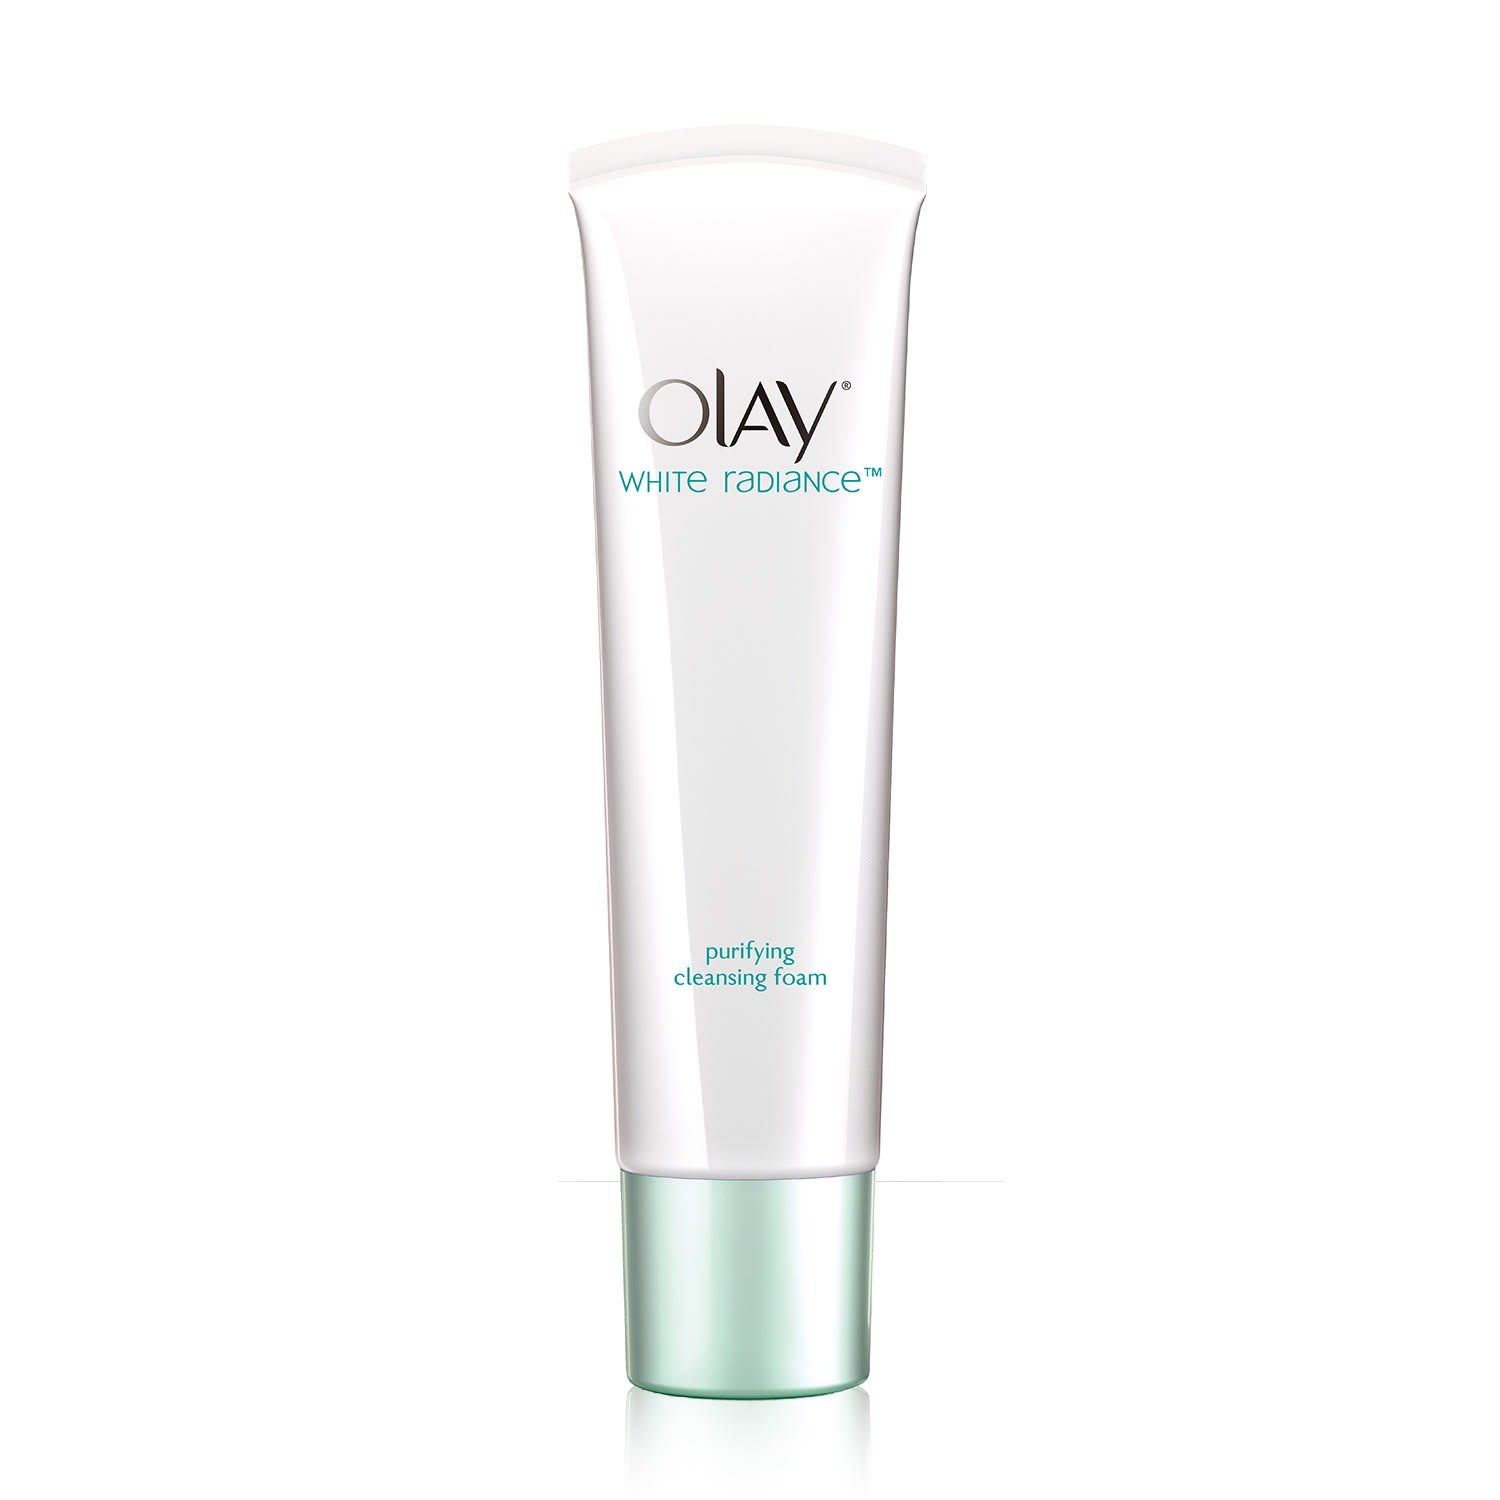 OLAY WR Purifying Cleansing Foam 125g